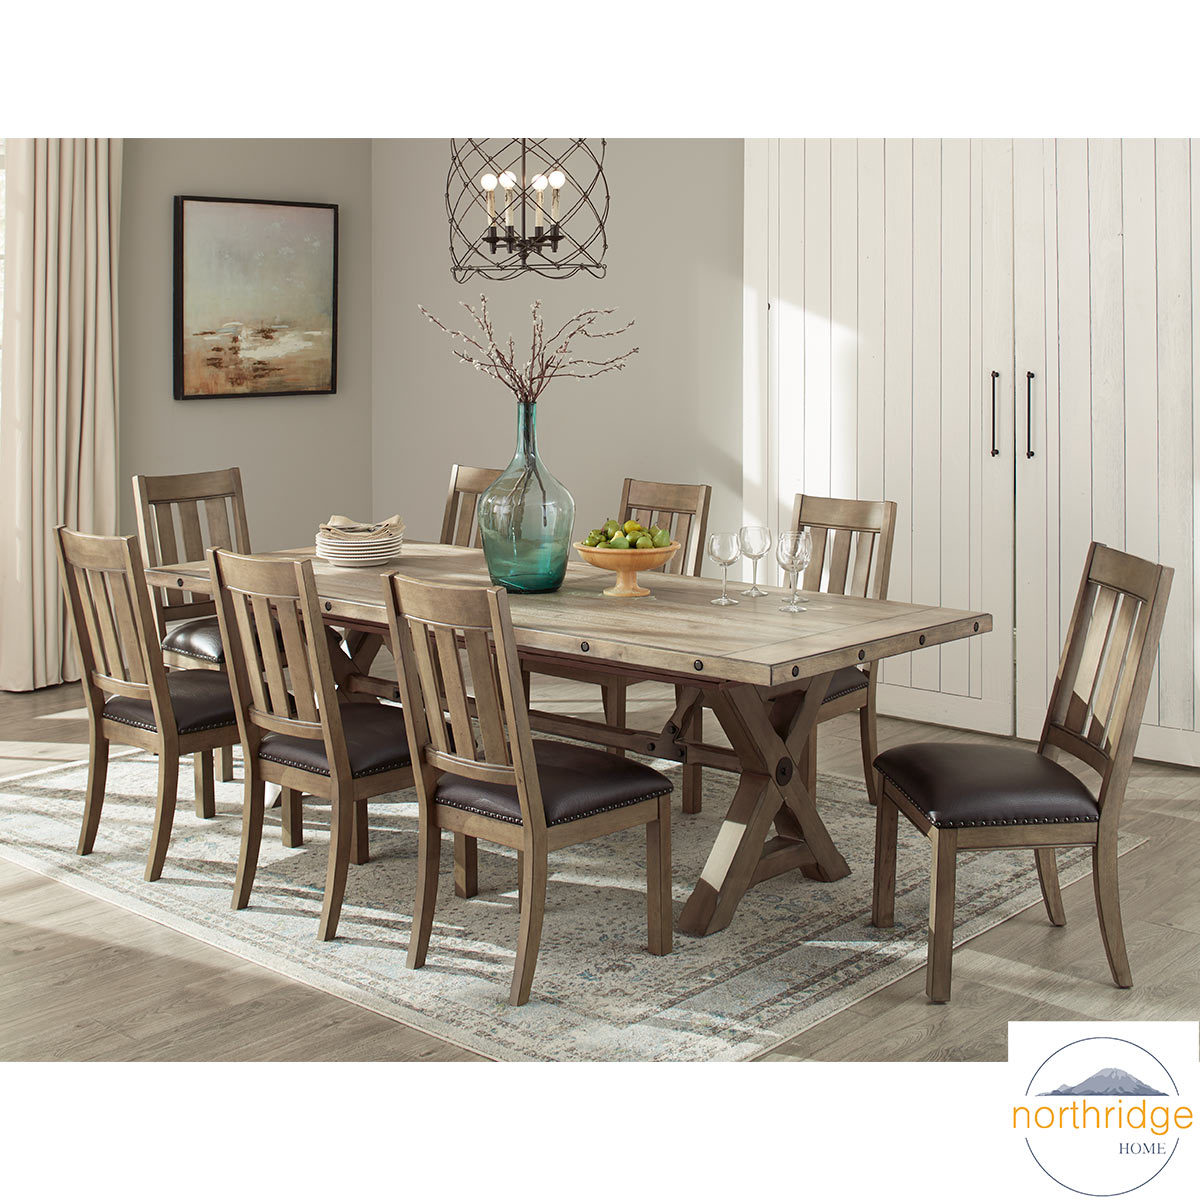 Dining Table 8 Chairs Northridge Home Booker Extending Dining Room Table 8 Chairs Costco Uk